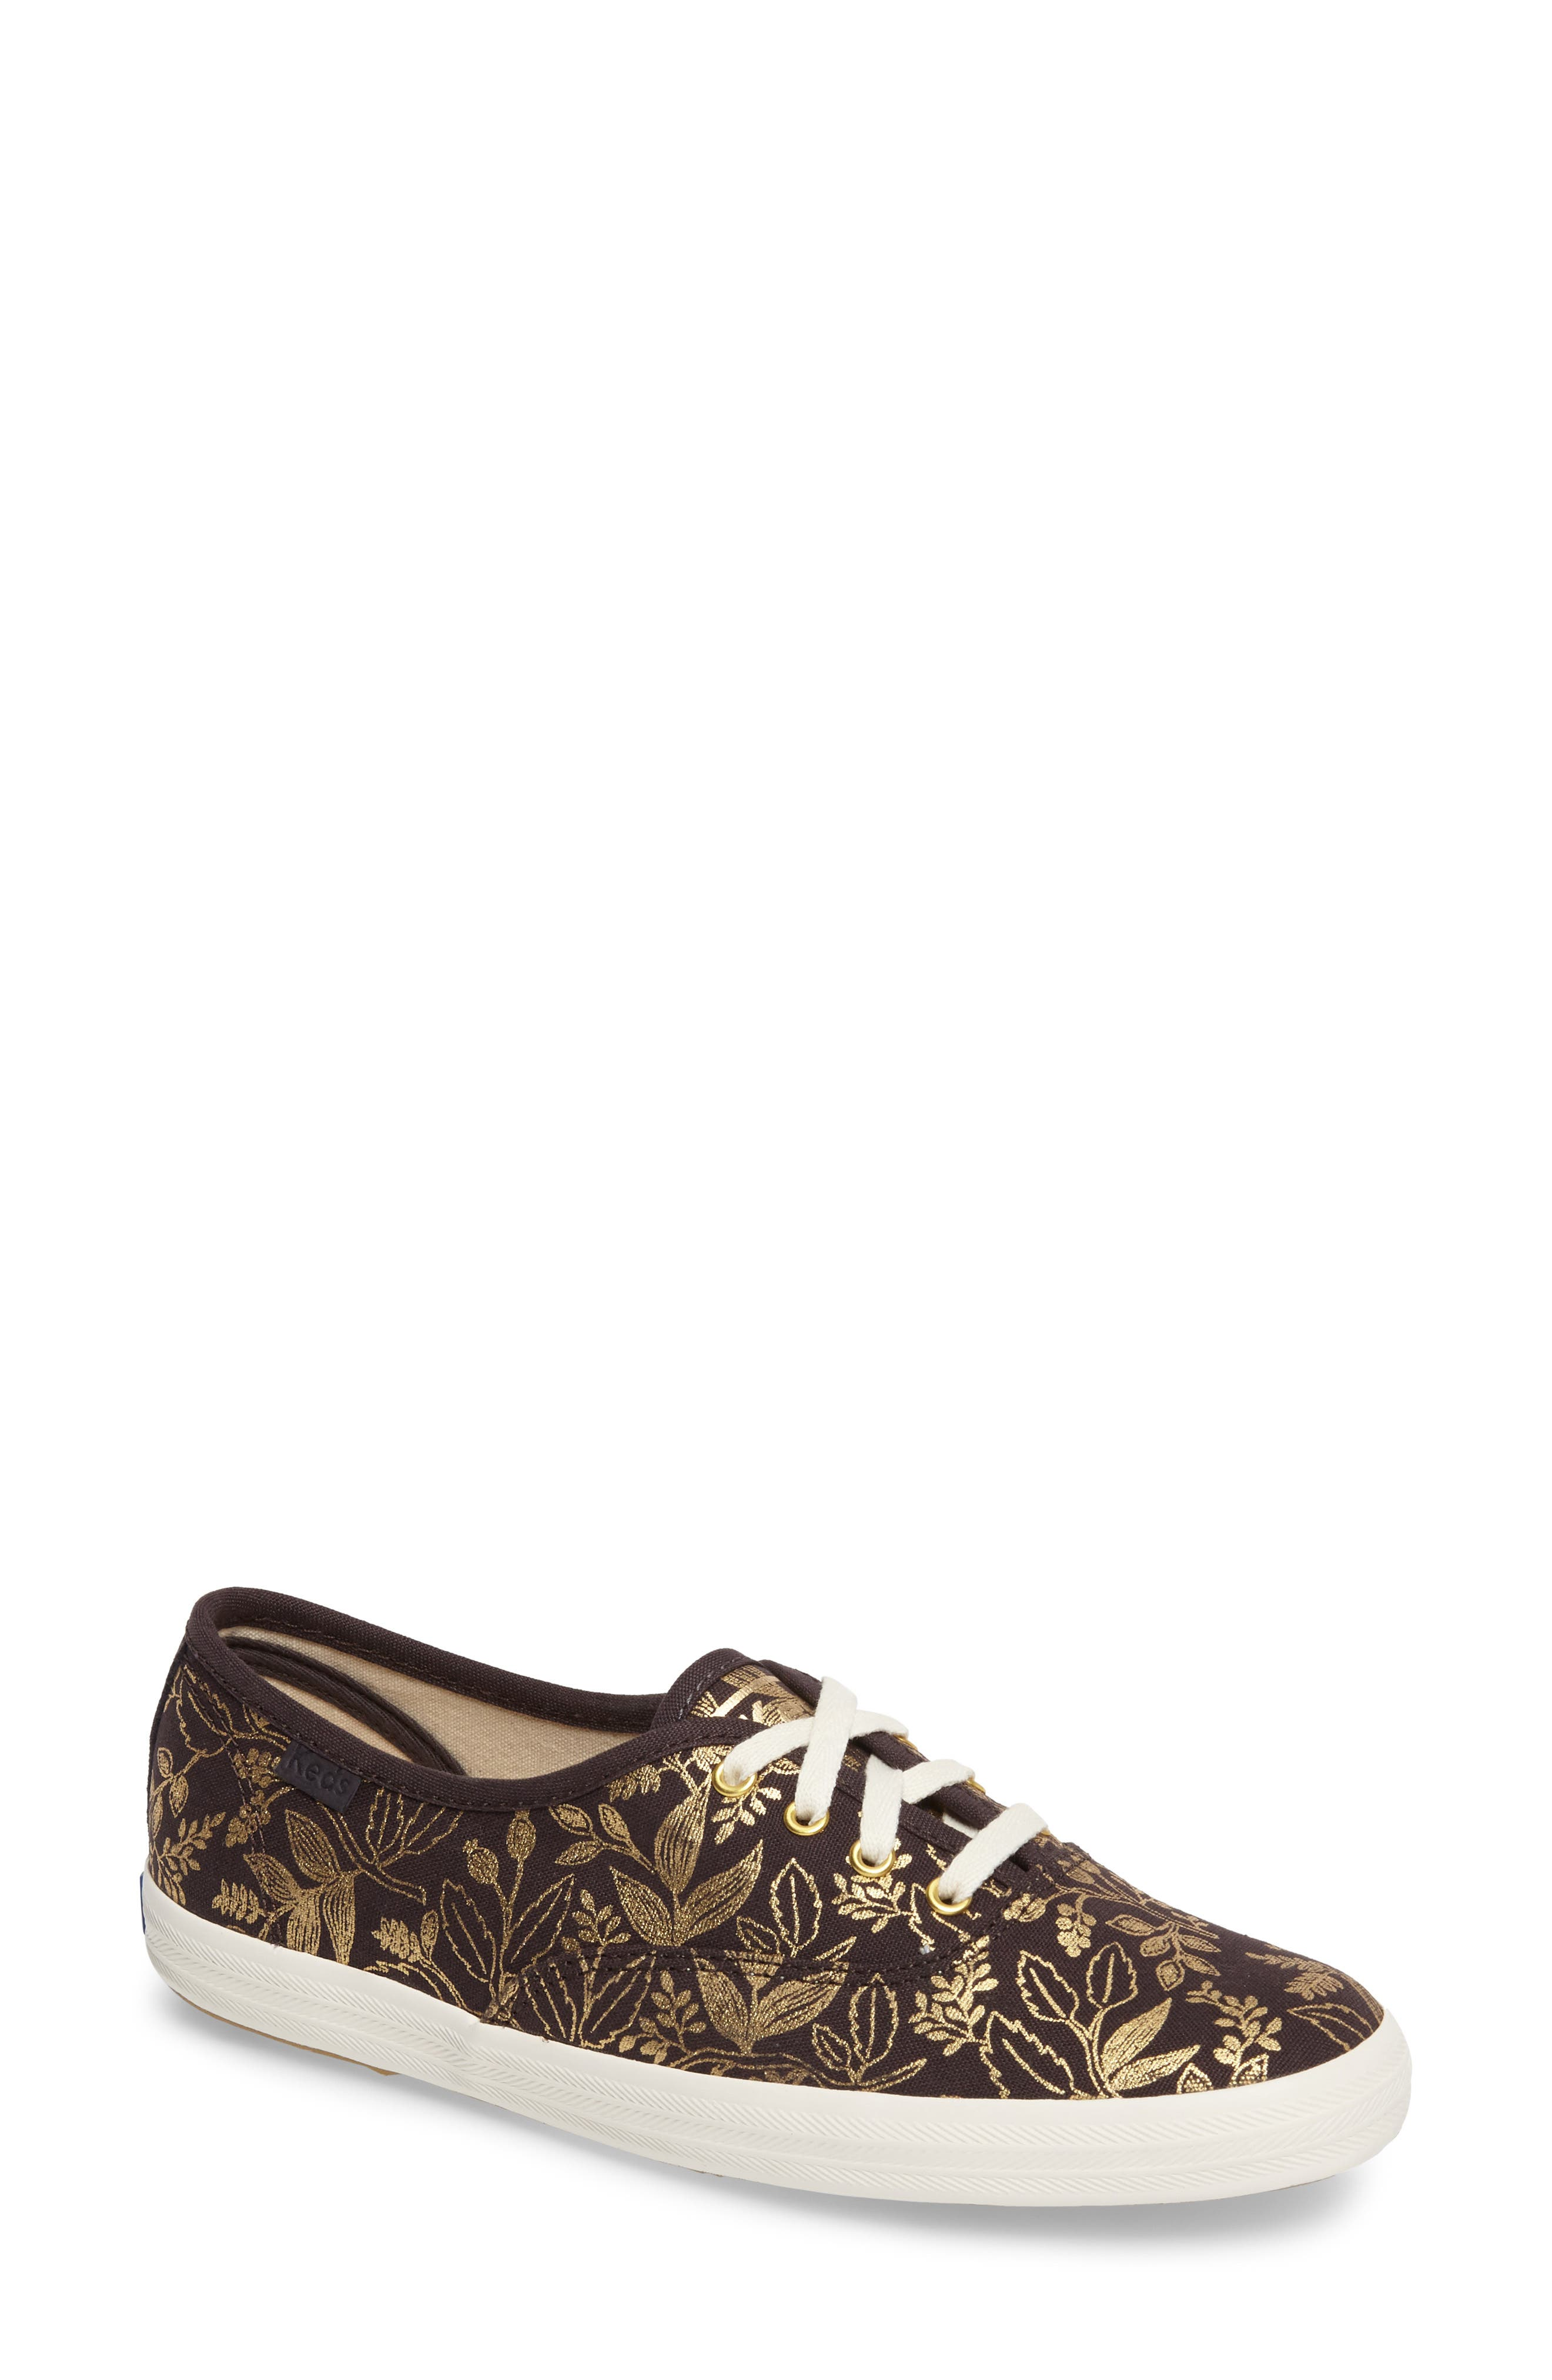 Alternate Image 1 Selected - Keds® x Rifle Paper Co. Queen Anne Sneaker (Women)